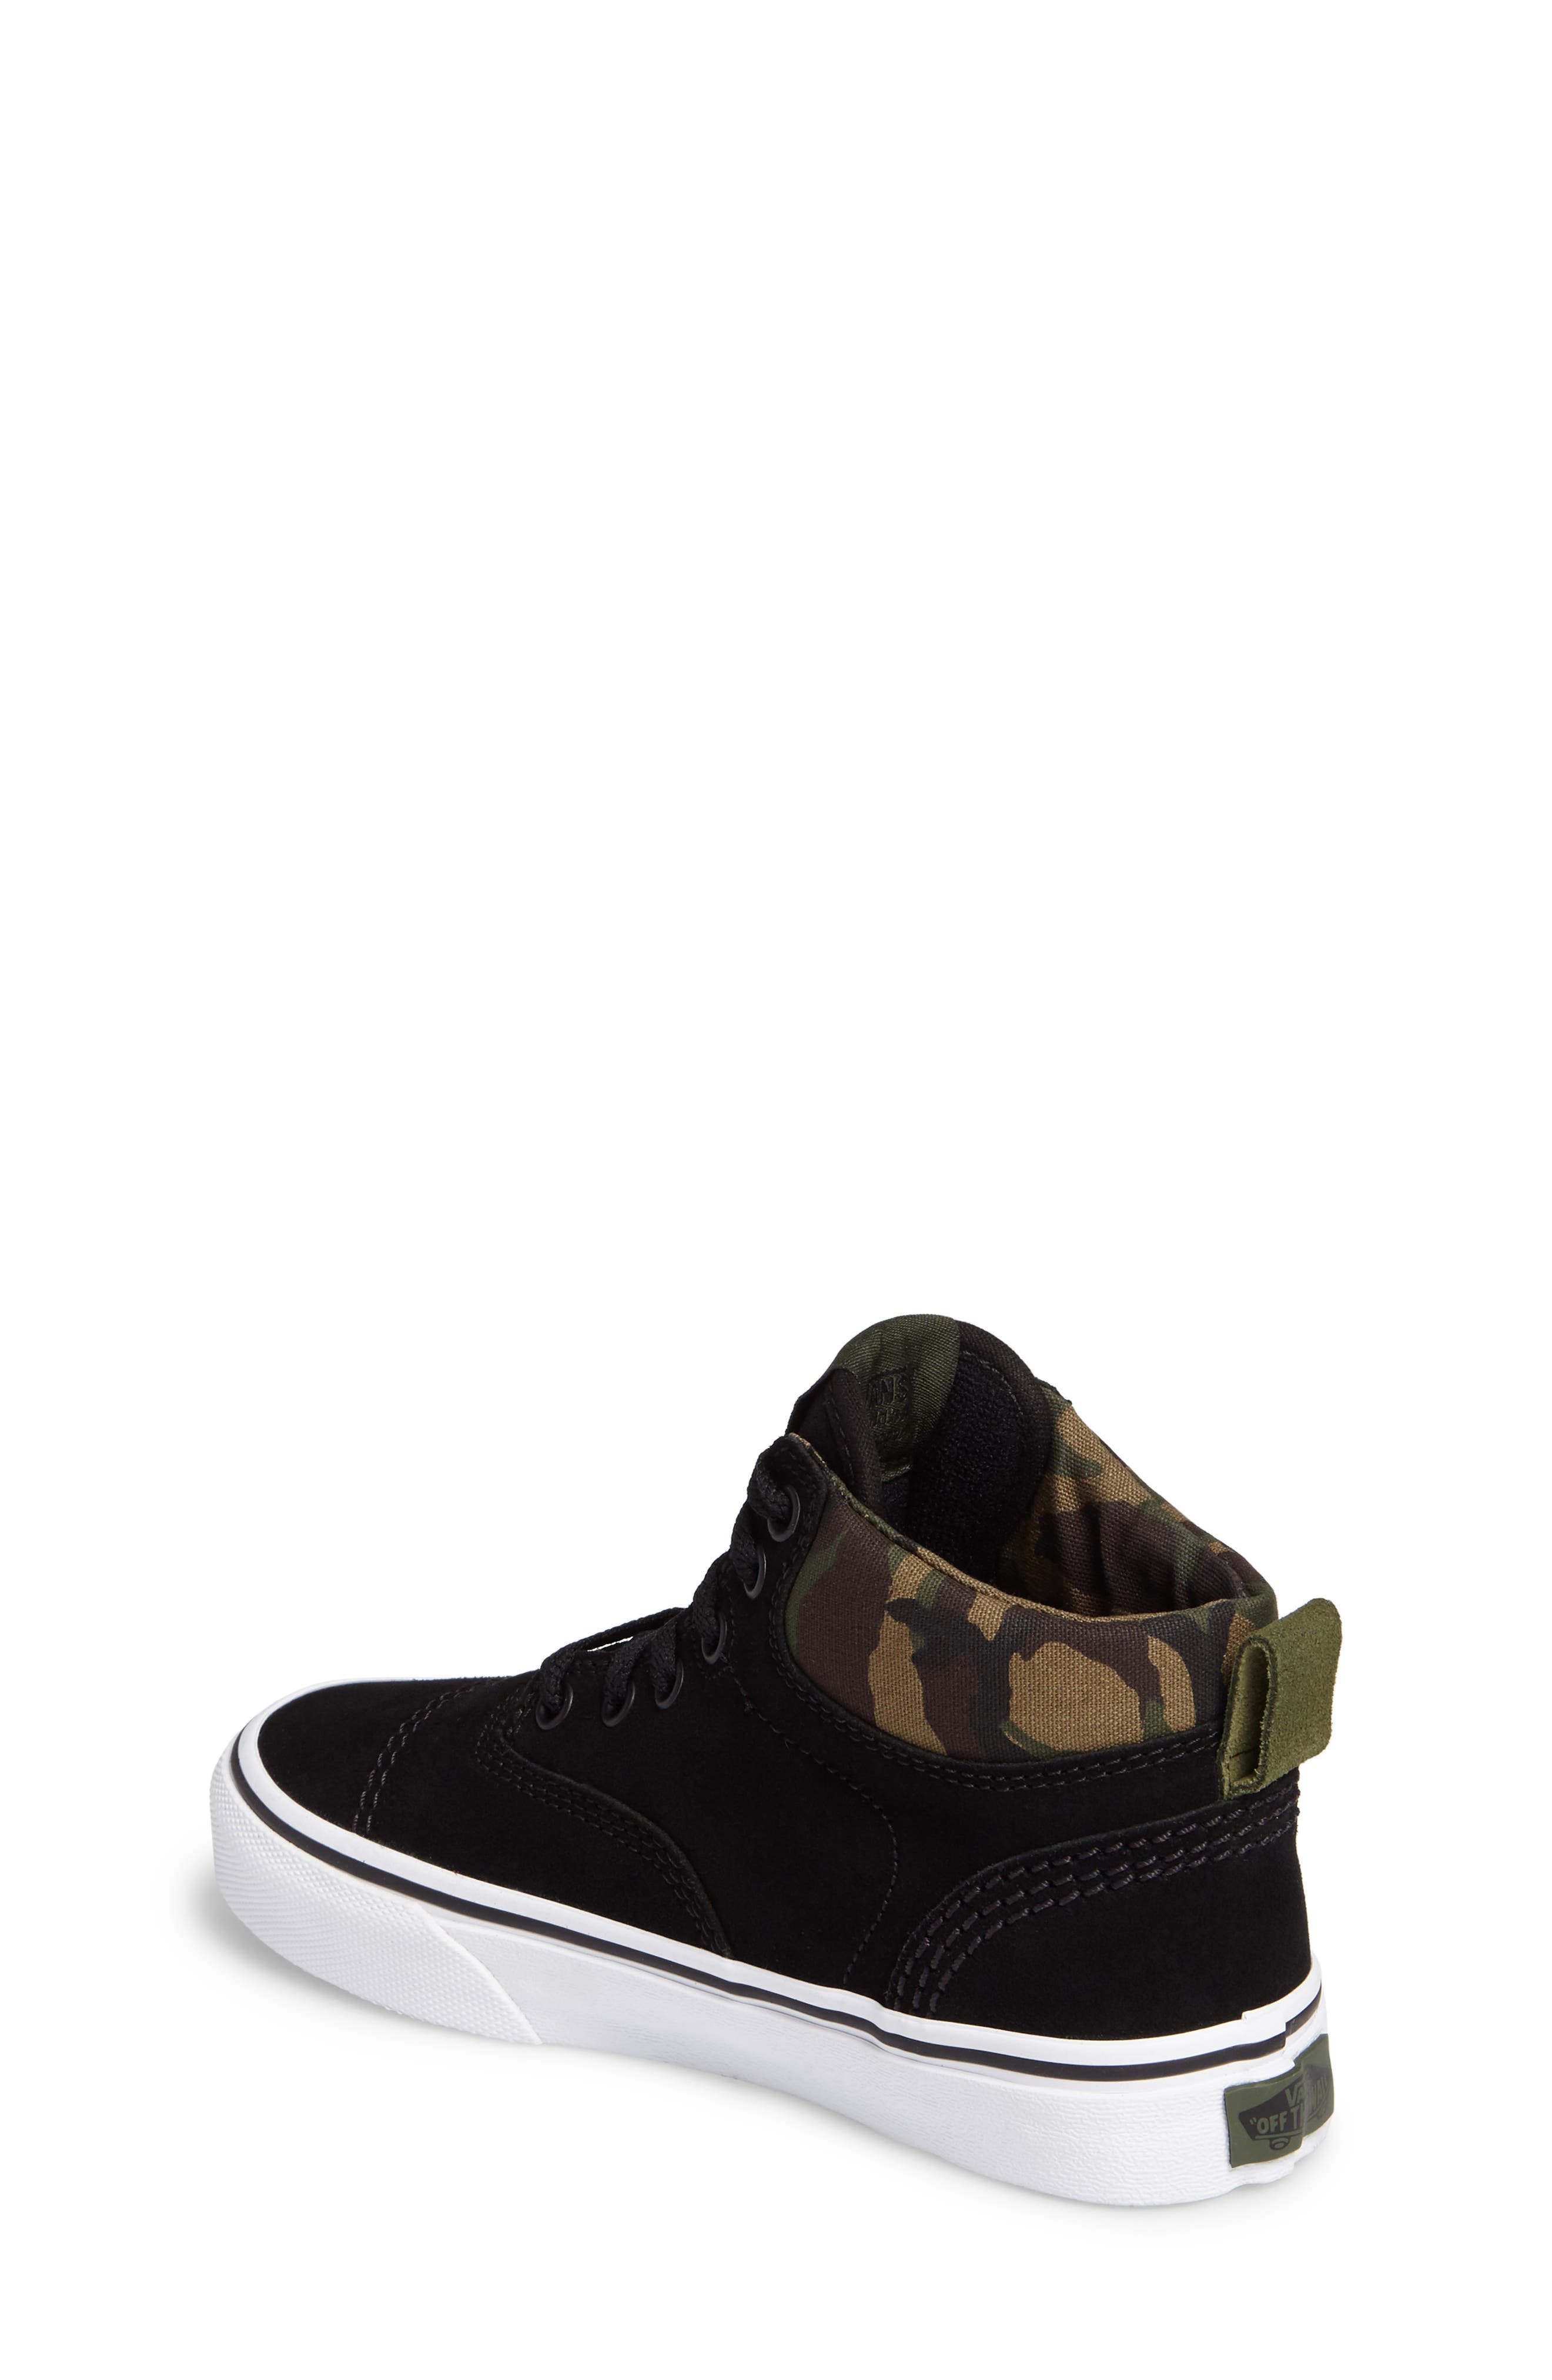 Era - Hi Sneaker,                             Alternate thumbnail 2, color,                             Classic Camo/ Black Suede